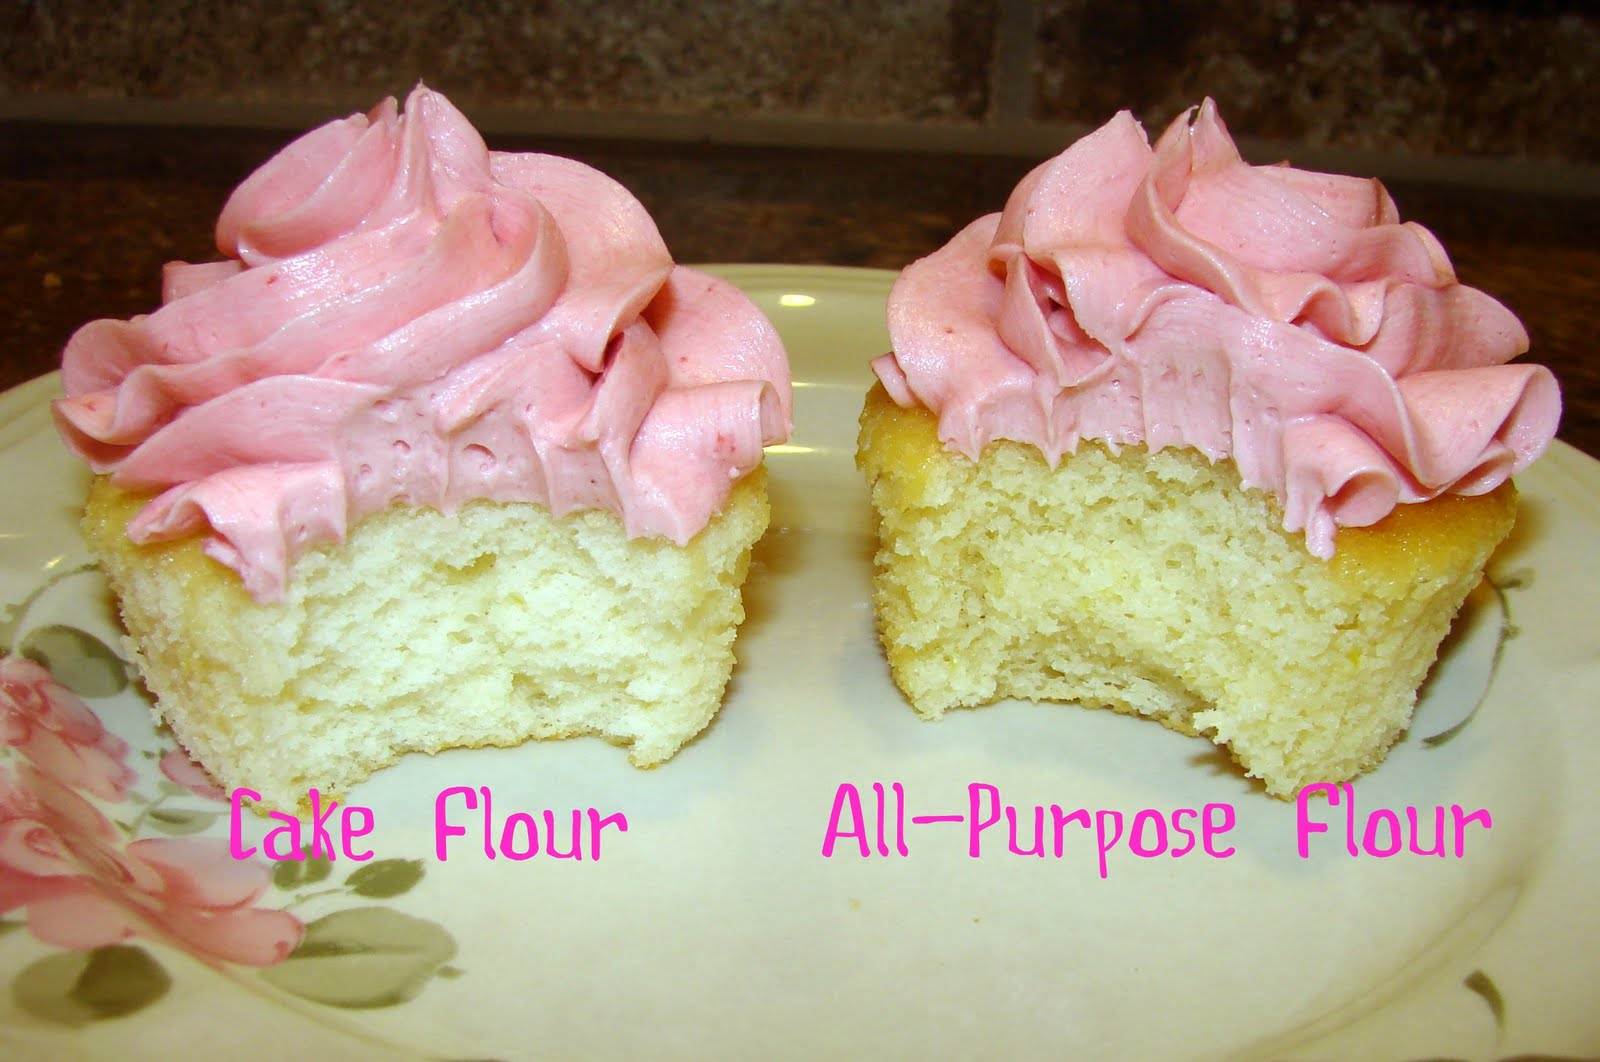 Can I Use Cake Flour Instead Of All Purpose